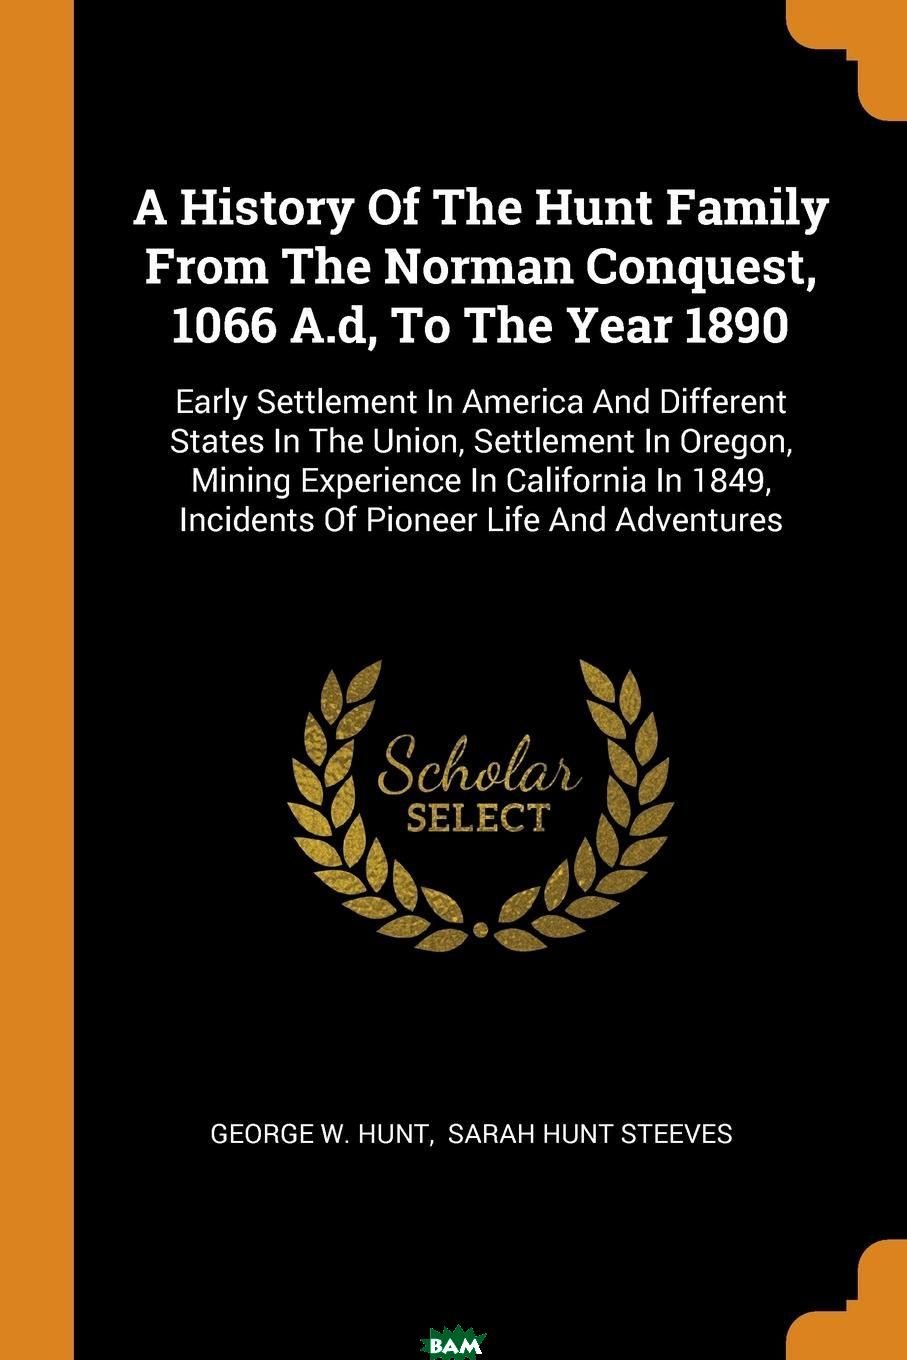 A History Of The Hunt Family From The Norman Conquest, 1066 A.d, To The Year 1890. Early Settlement In America And Different States In The Union, Settlement In Oregon, Mining Experience In California, George W. Hunt, 9780353412620  - купить со скидкой